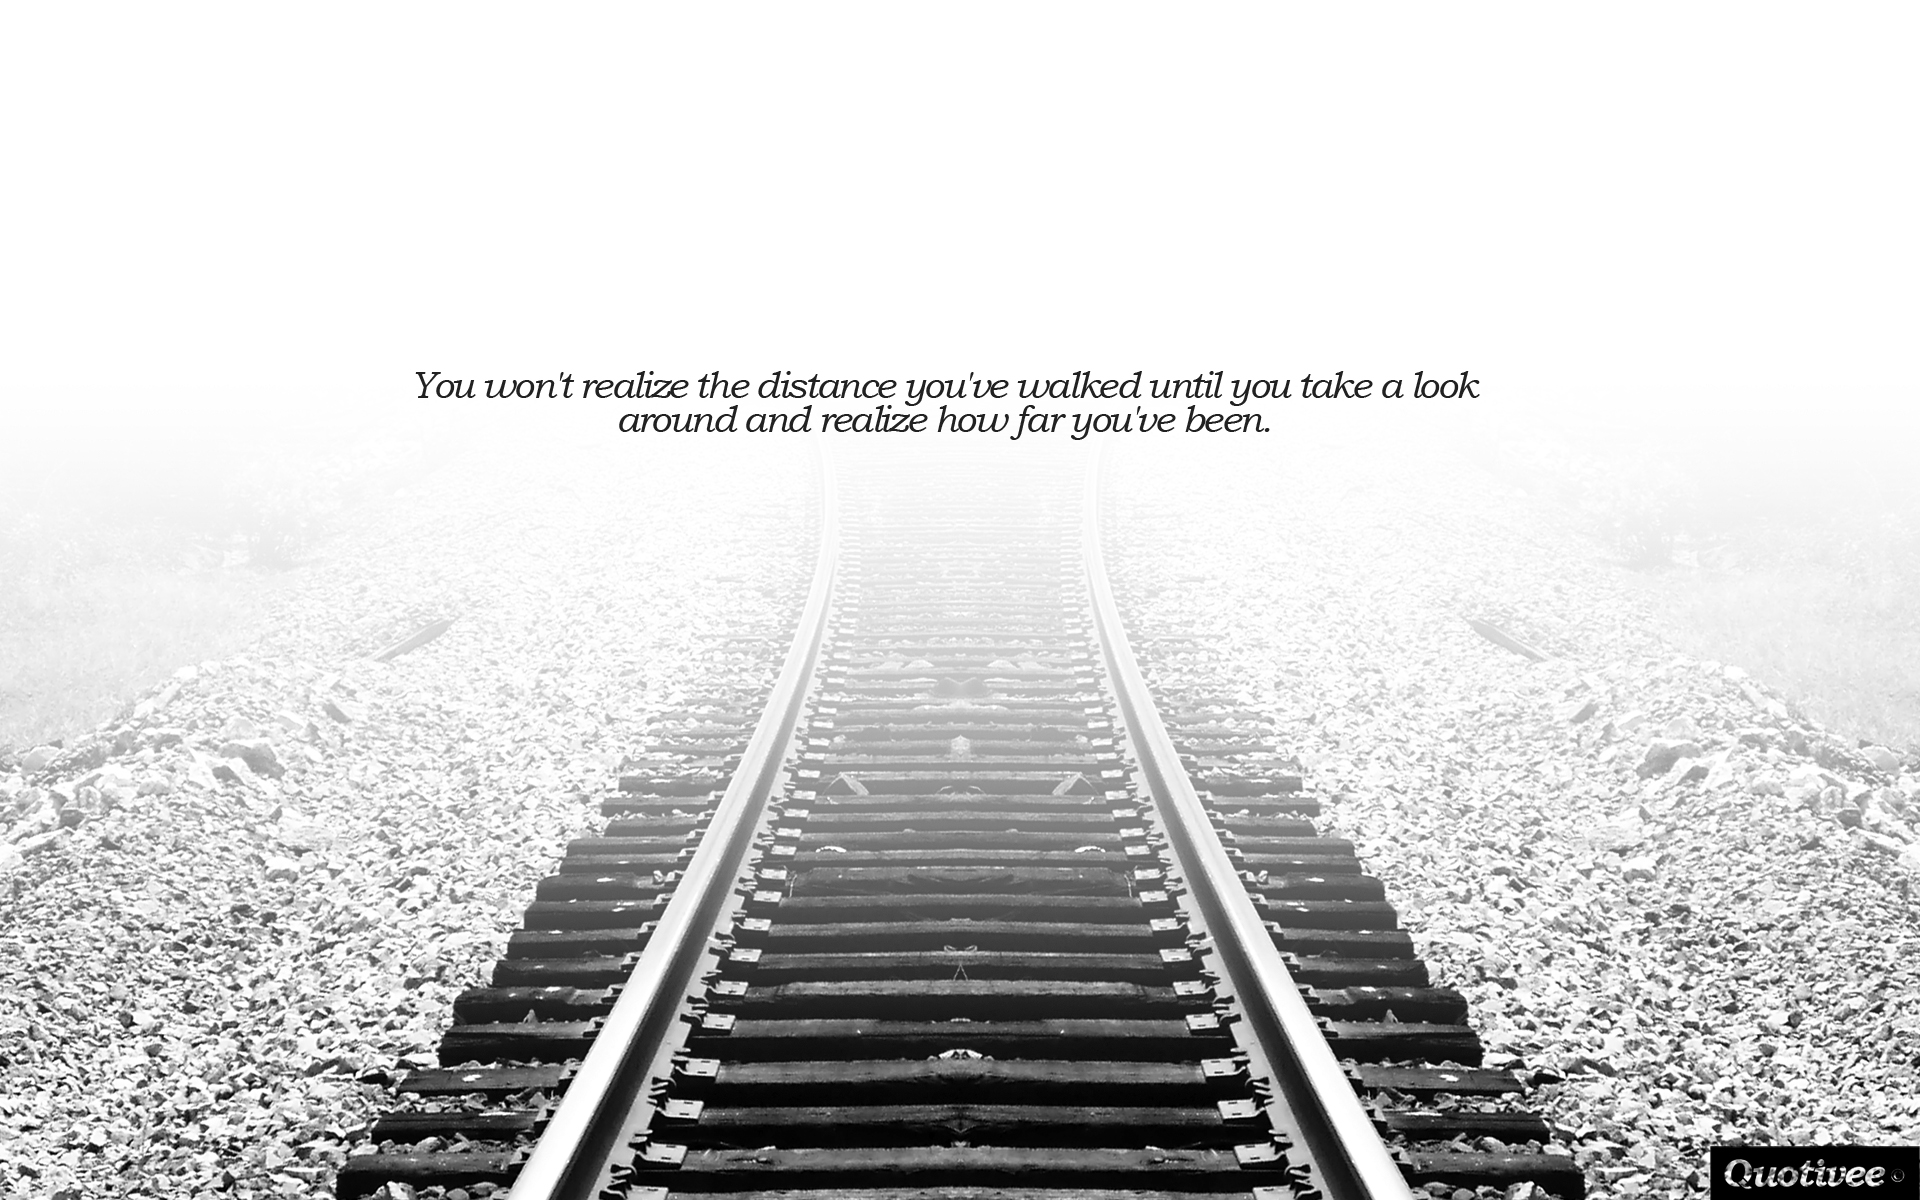 Business Inspirational Quotes Wallpaper Download The Distance You Ve Walked Inspirational Quotes Quotivee